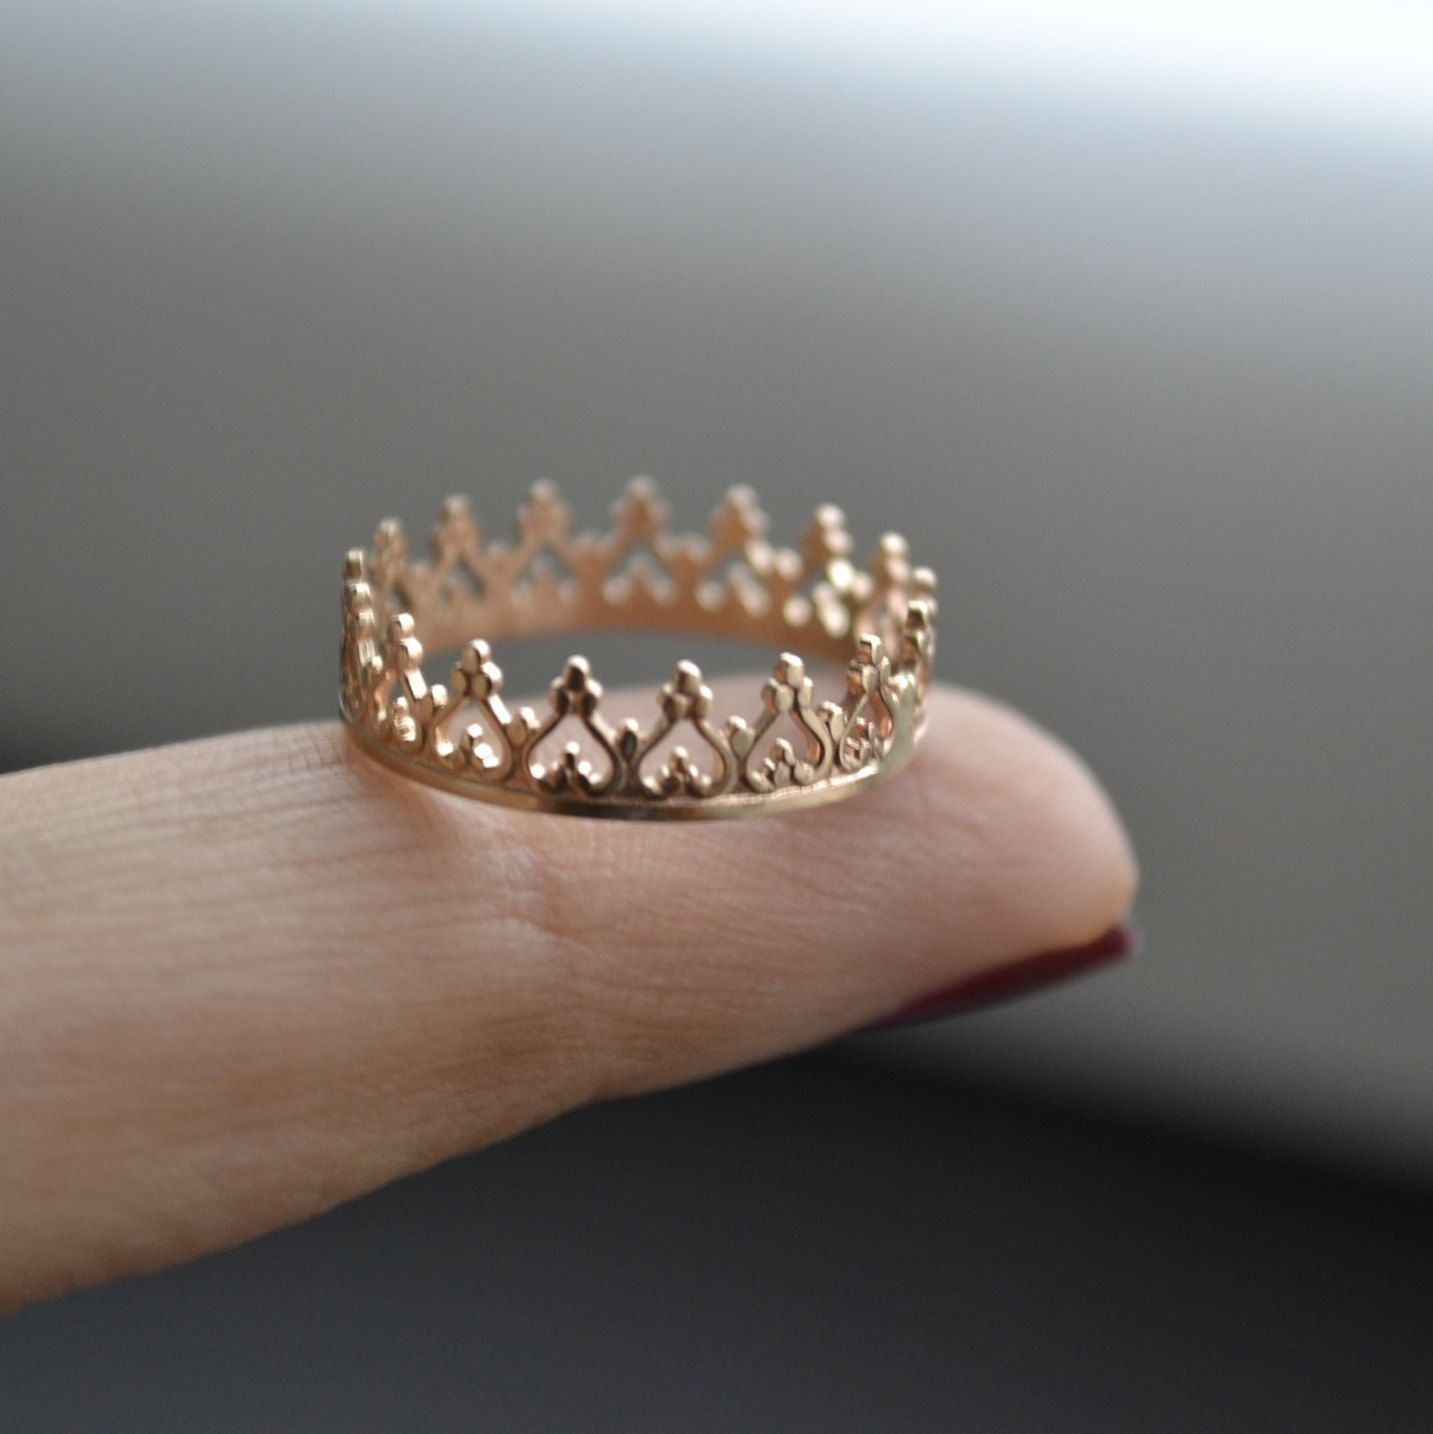 gold via without wedding band engagement ring there no queen crown rings a size solid etsy pin is